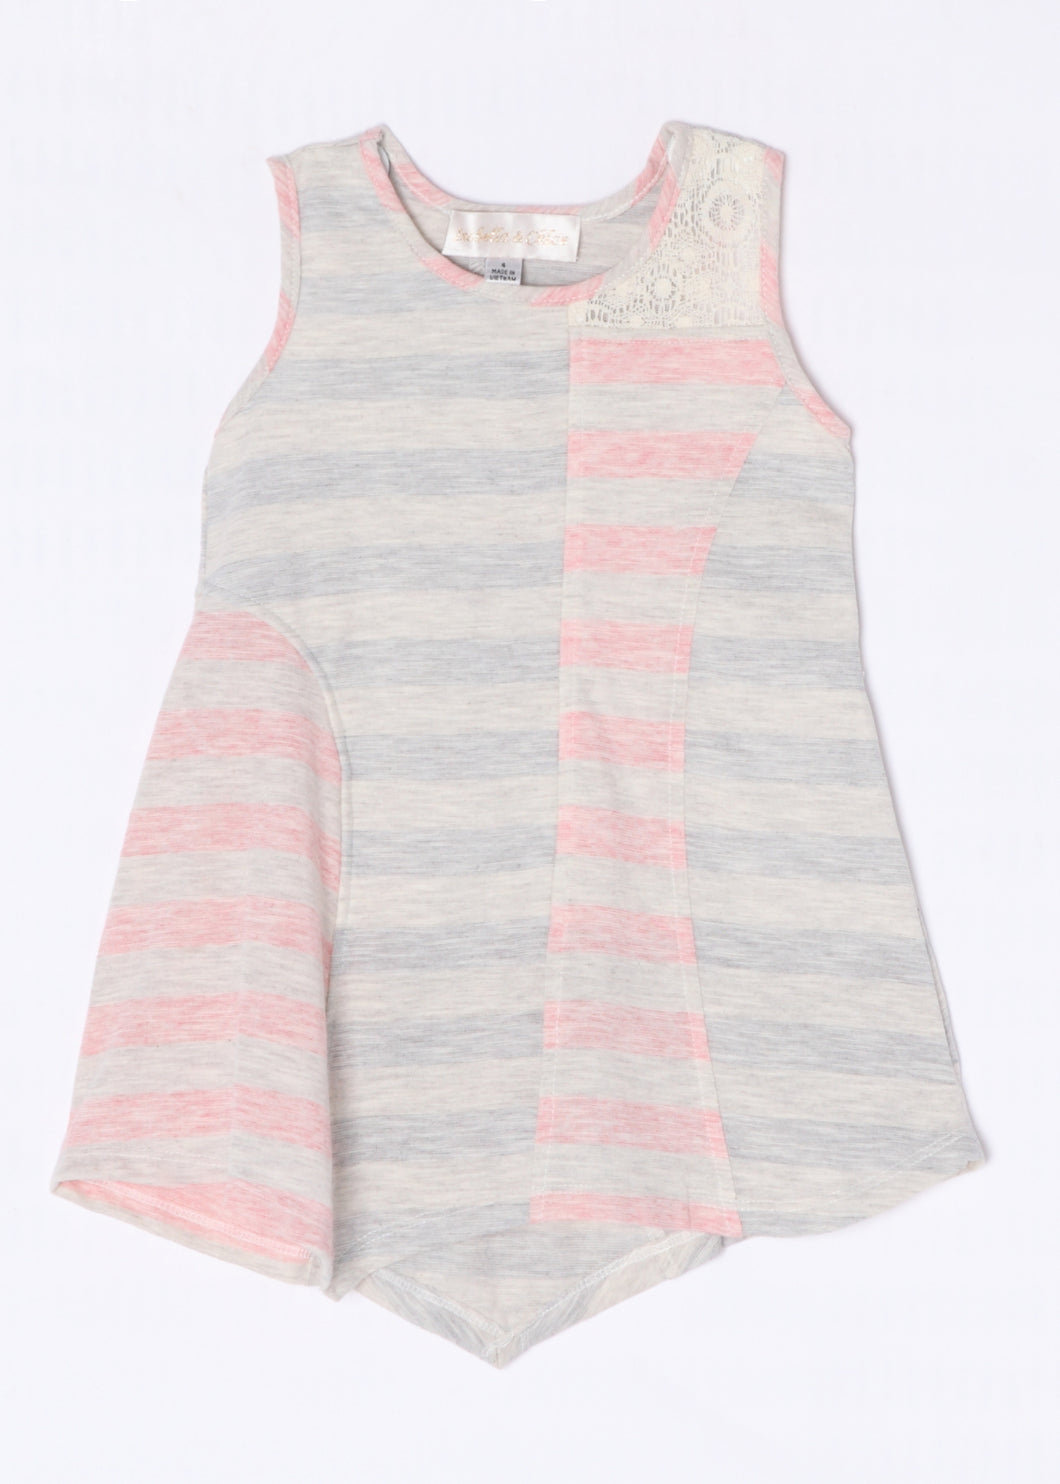 Isobella and Chloe Sweet Savannah Top - Bloom Kids Collection - Isobella & Chloe